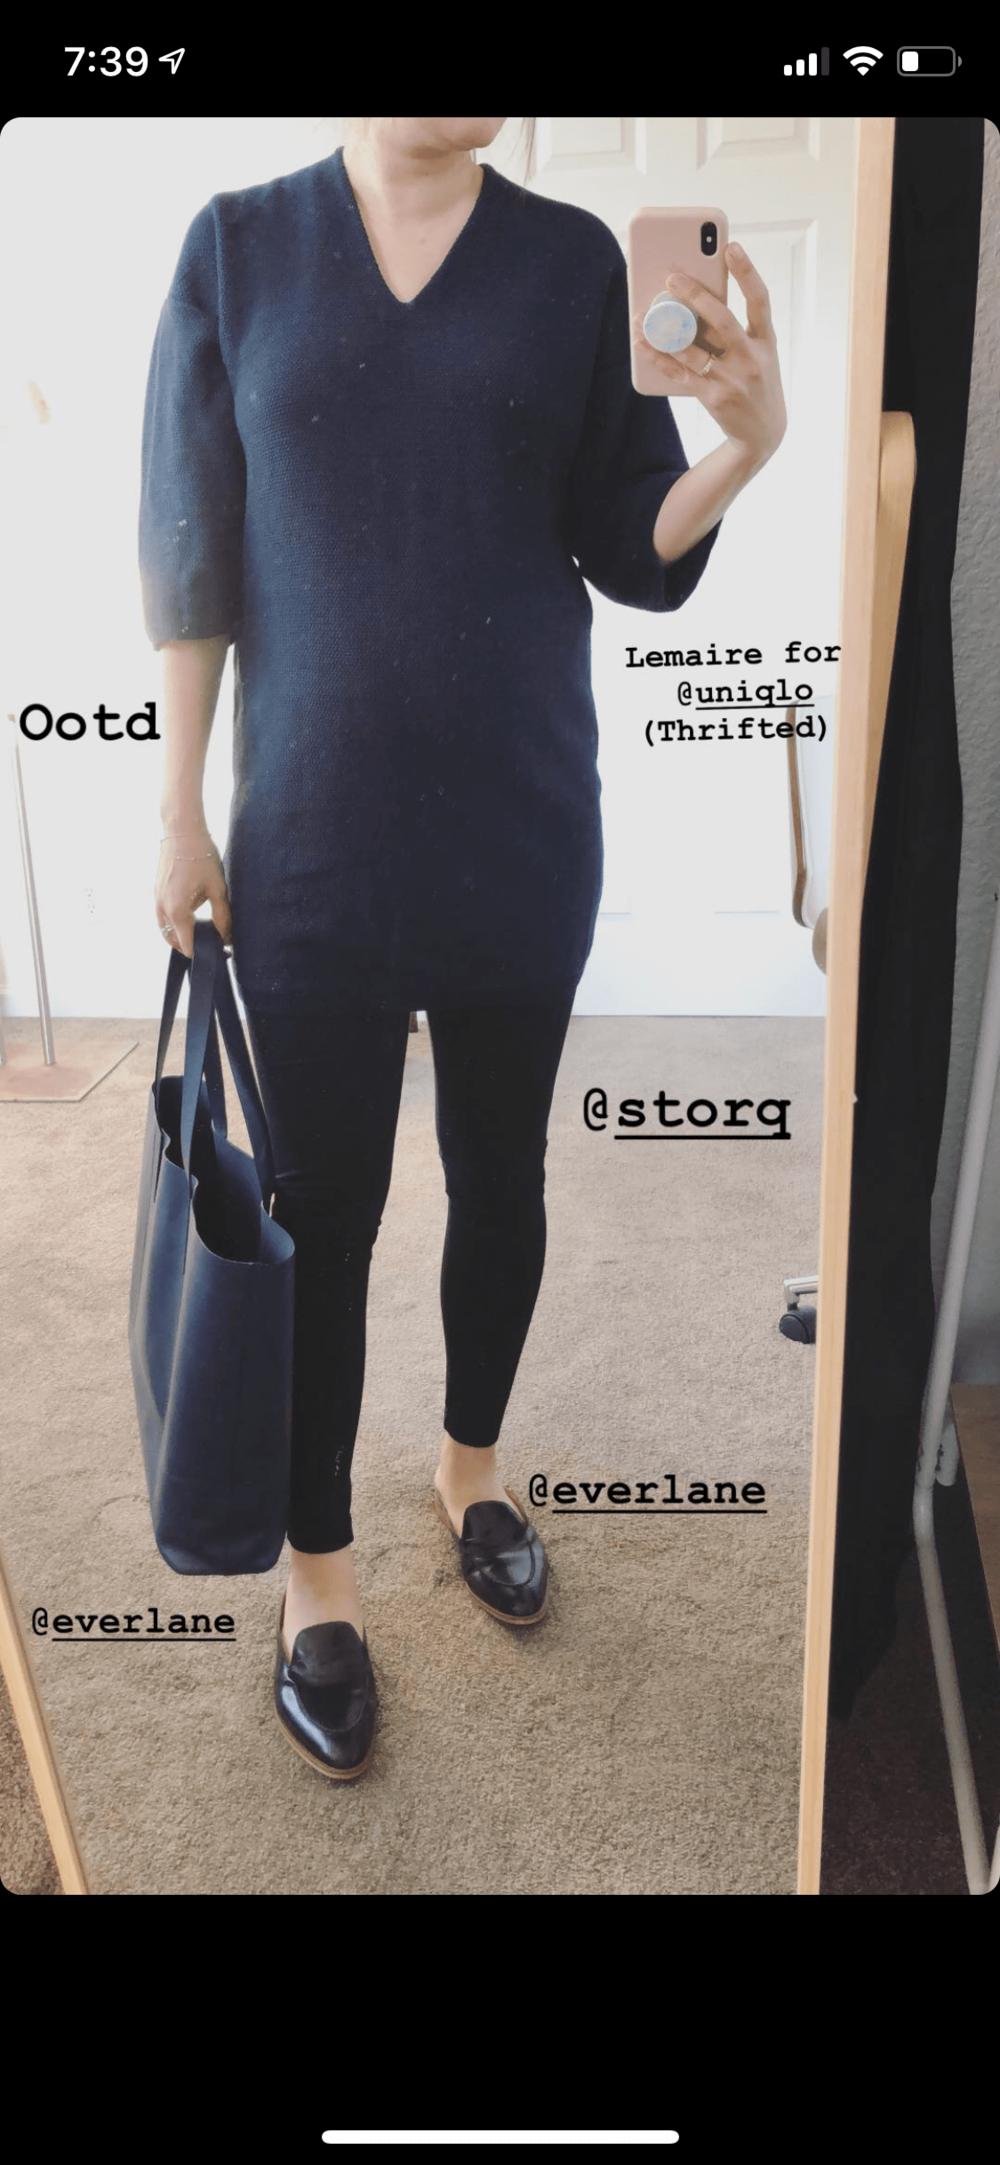 Everlane Review Day Market Tote